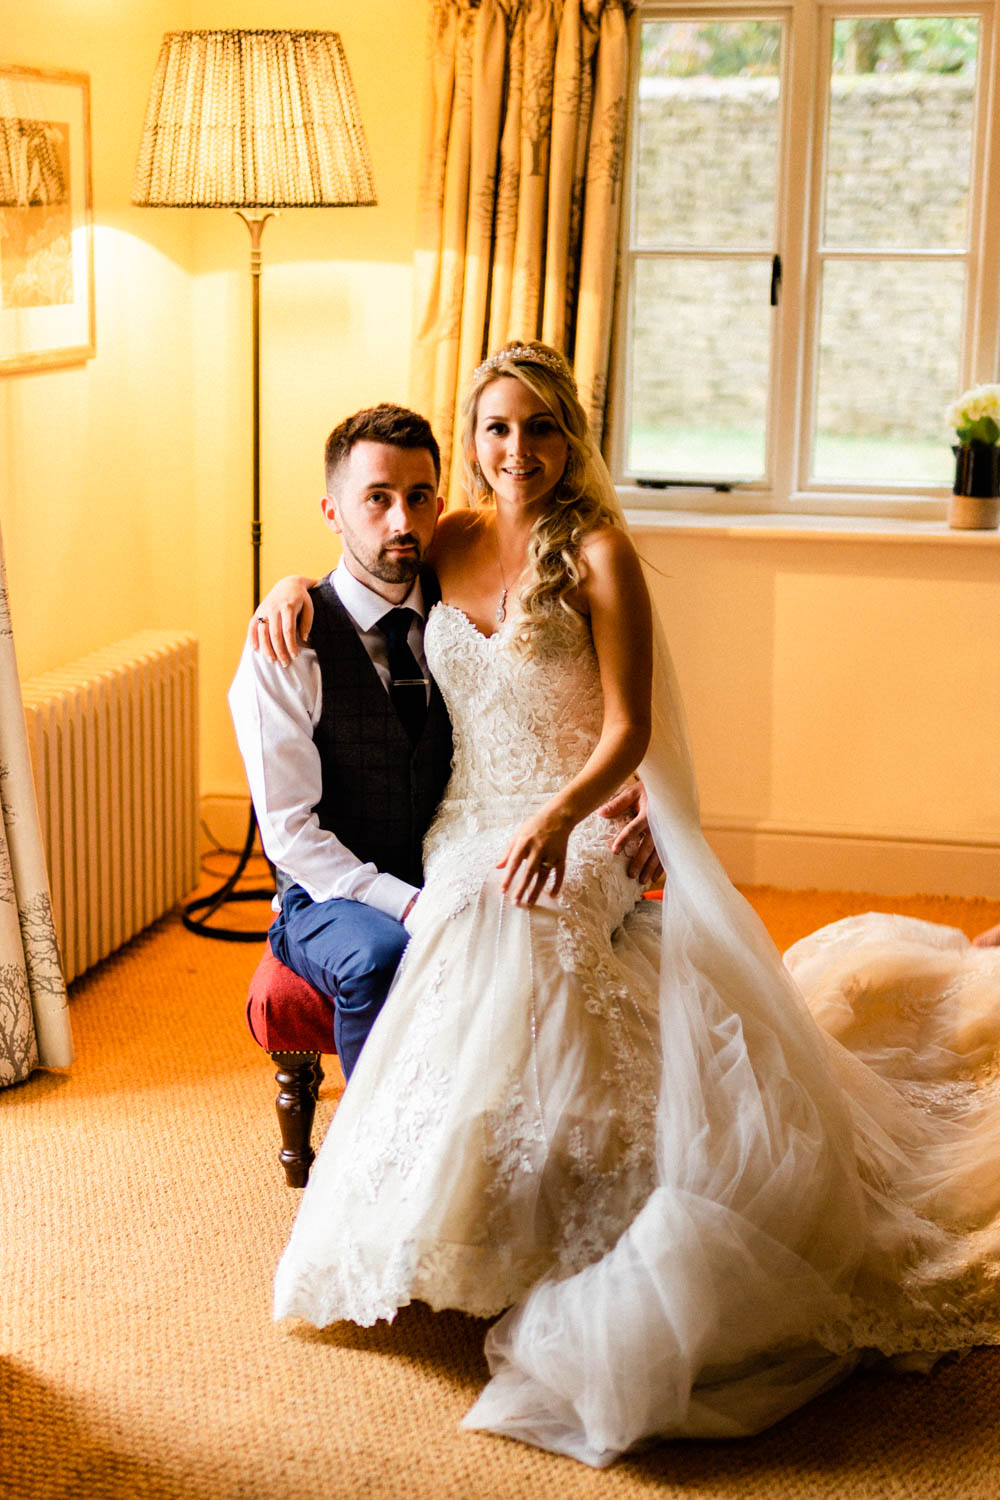 Special-Day-Photography-The-Manor-House-Hotel-Moreton-in-Marsh-Moreton-In-Marsh-Summer-Wedding-The-bride-and-groom-sitting-for-a-portrait.jpg